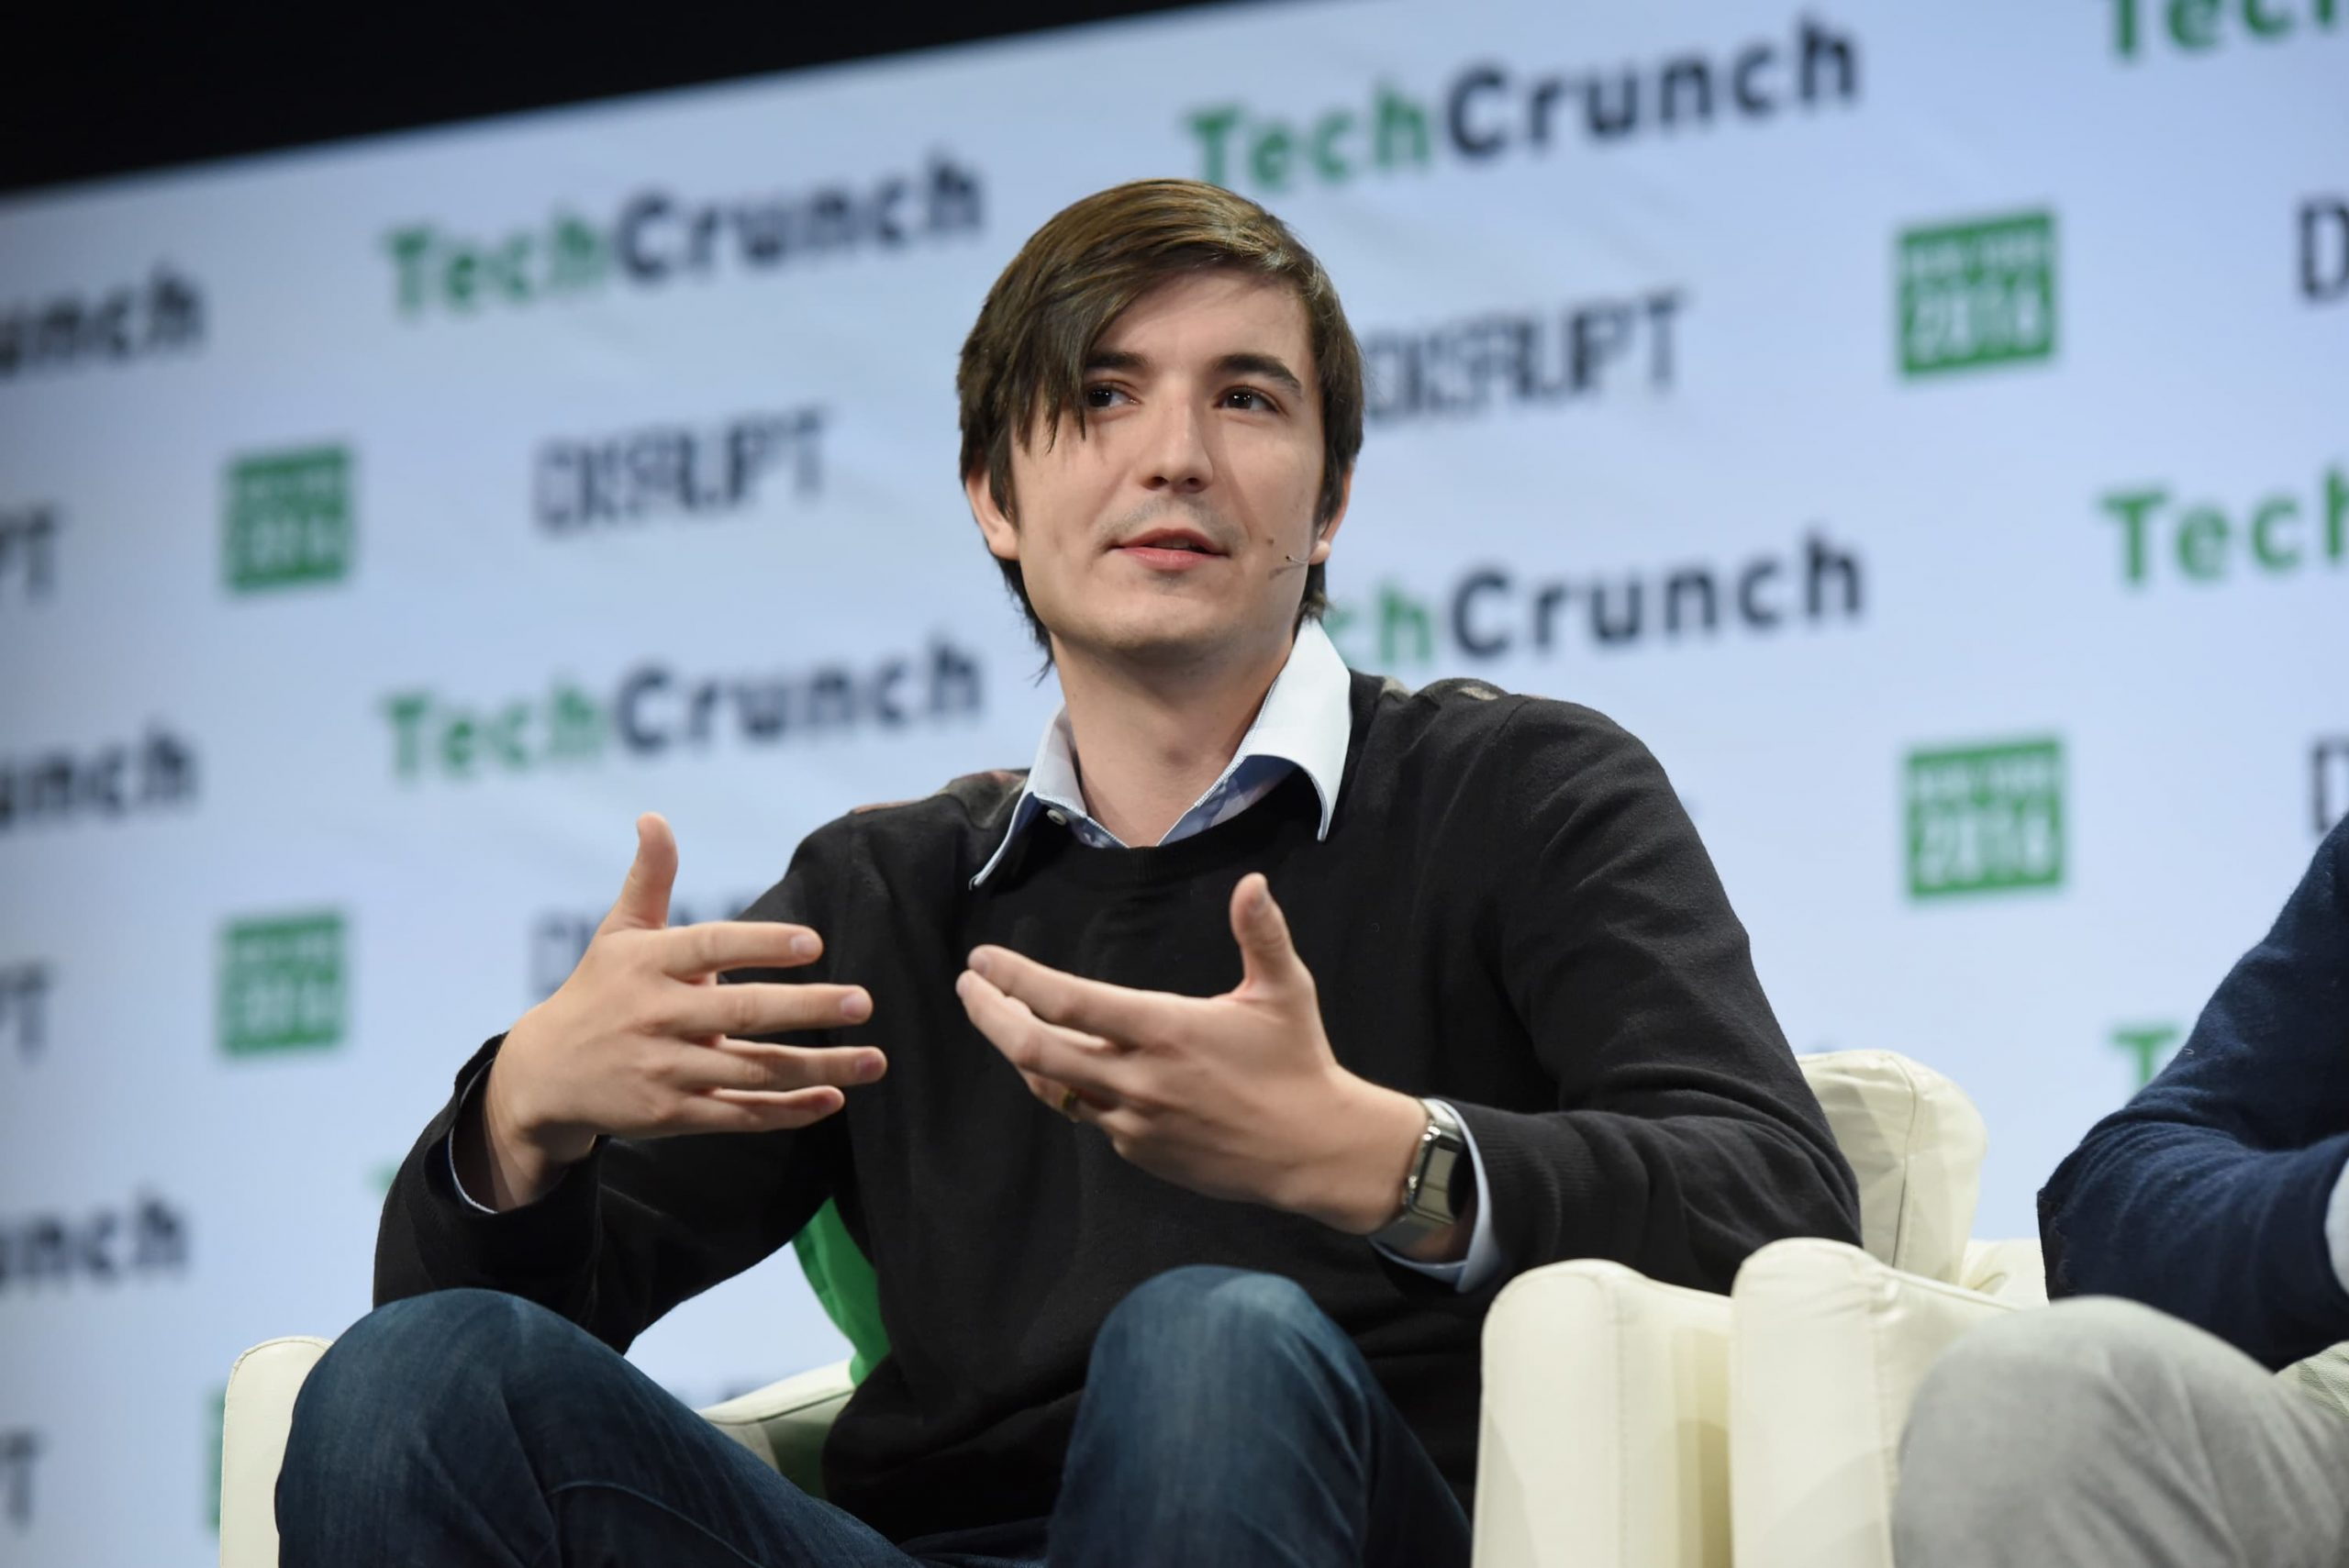 Robinhood CEO explains to Elon Musk why his platform restricted trading last week